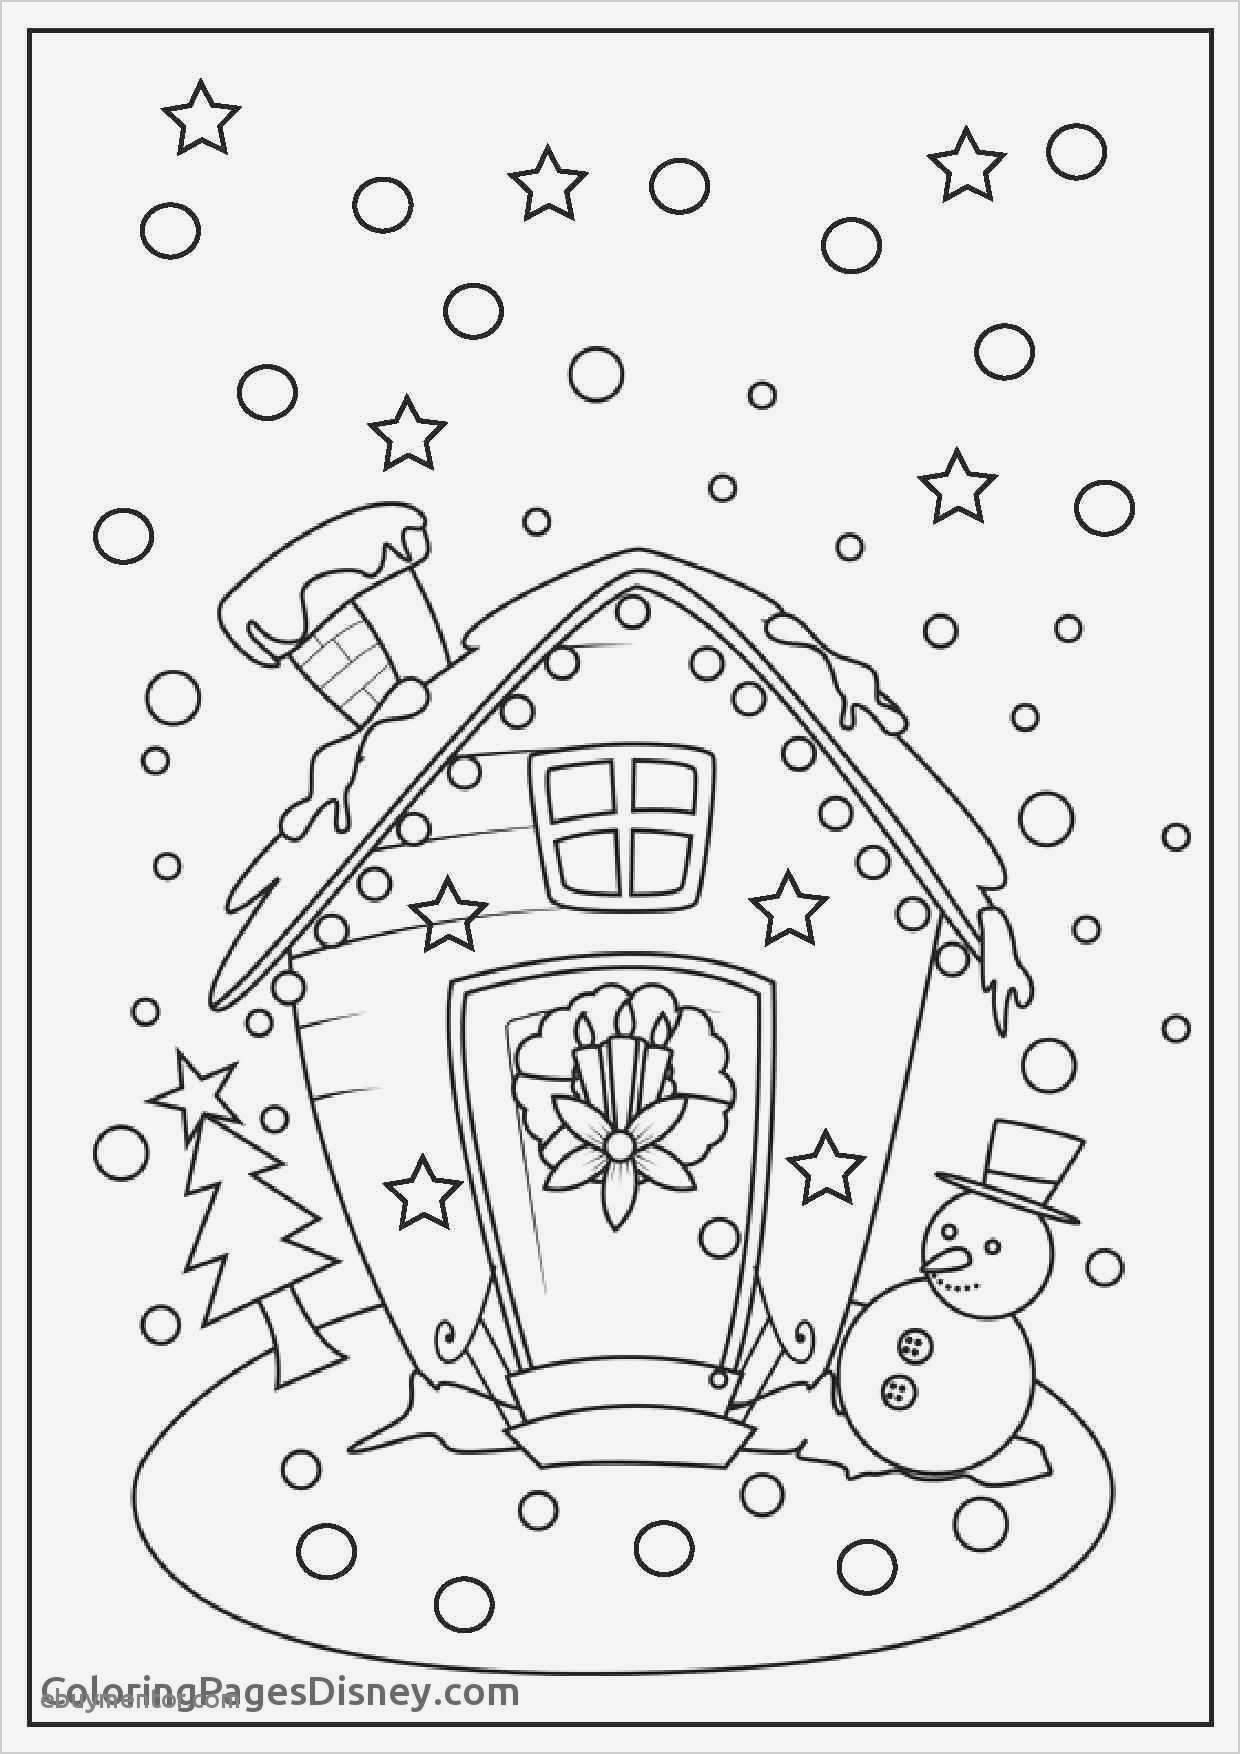 coloring pages for kides Collection-Family Picture Coloring Groovy Family Picture Coloring As If Free Christmas Coloring Pages For Kids 14-h